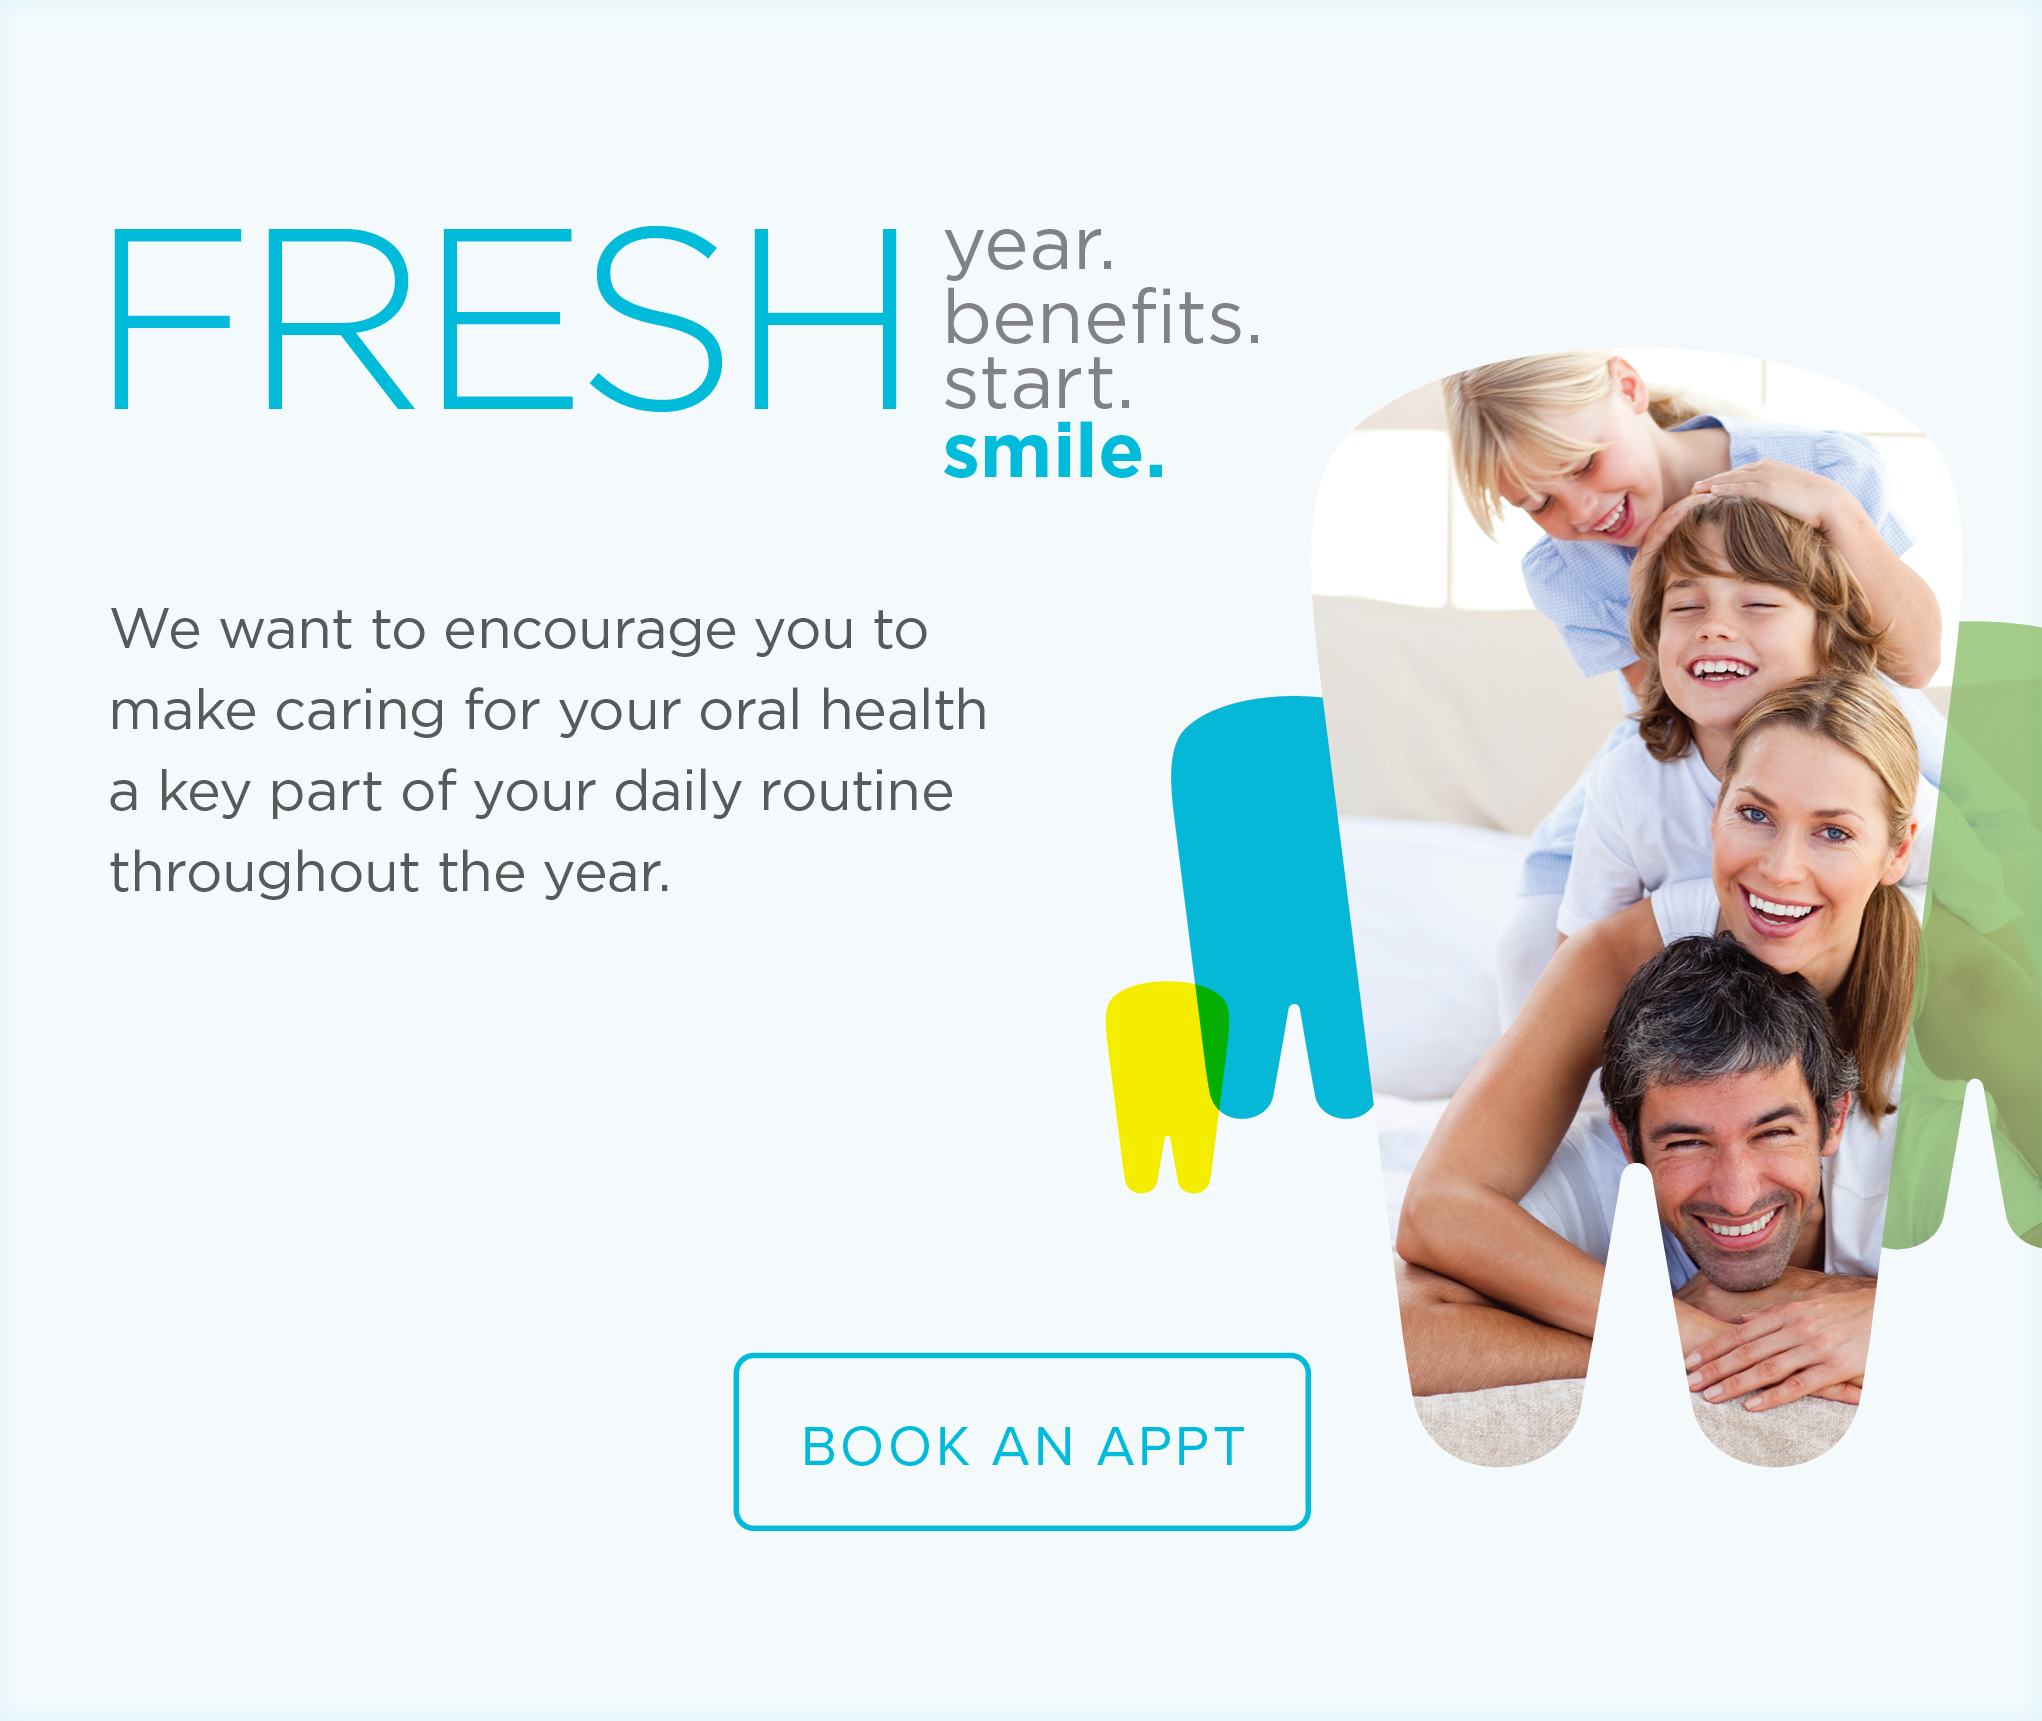 Beach City Dental Group - Make the Most of Your Benefits